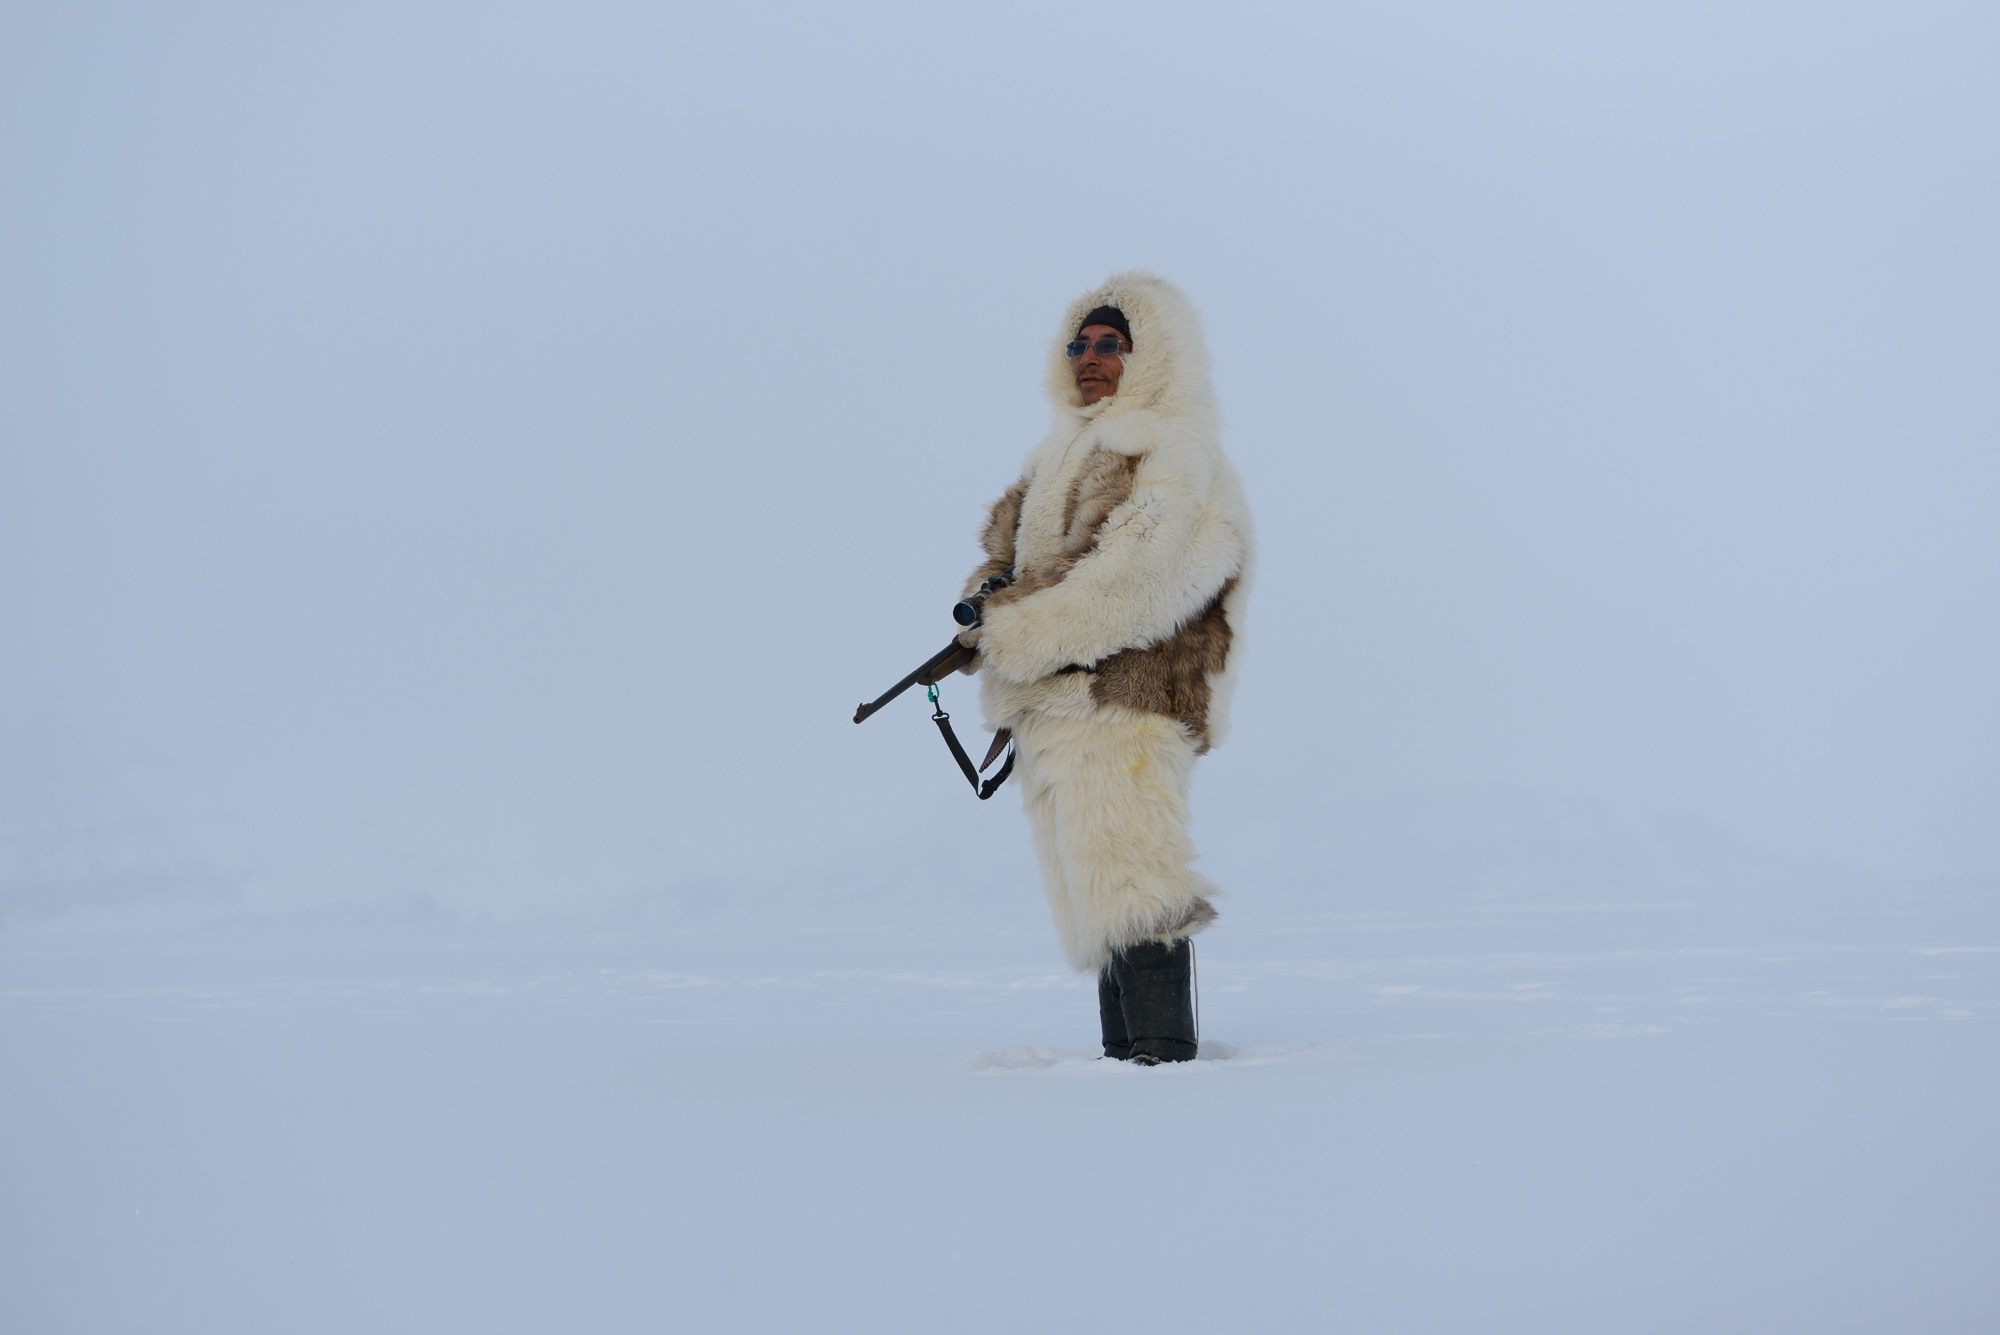 Tomas Scanning the Sea Ice for Seals